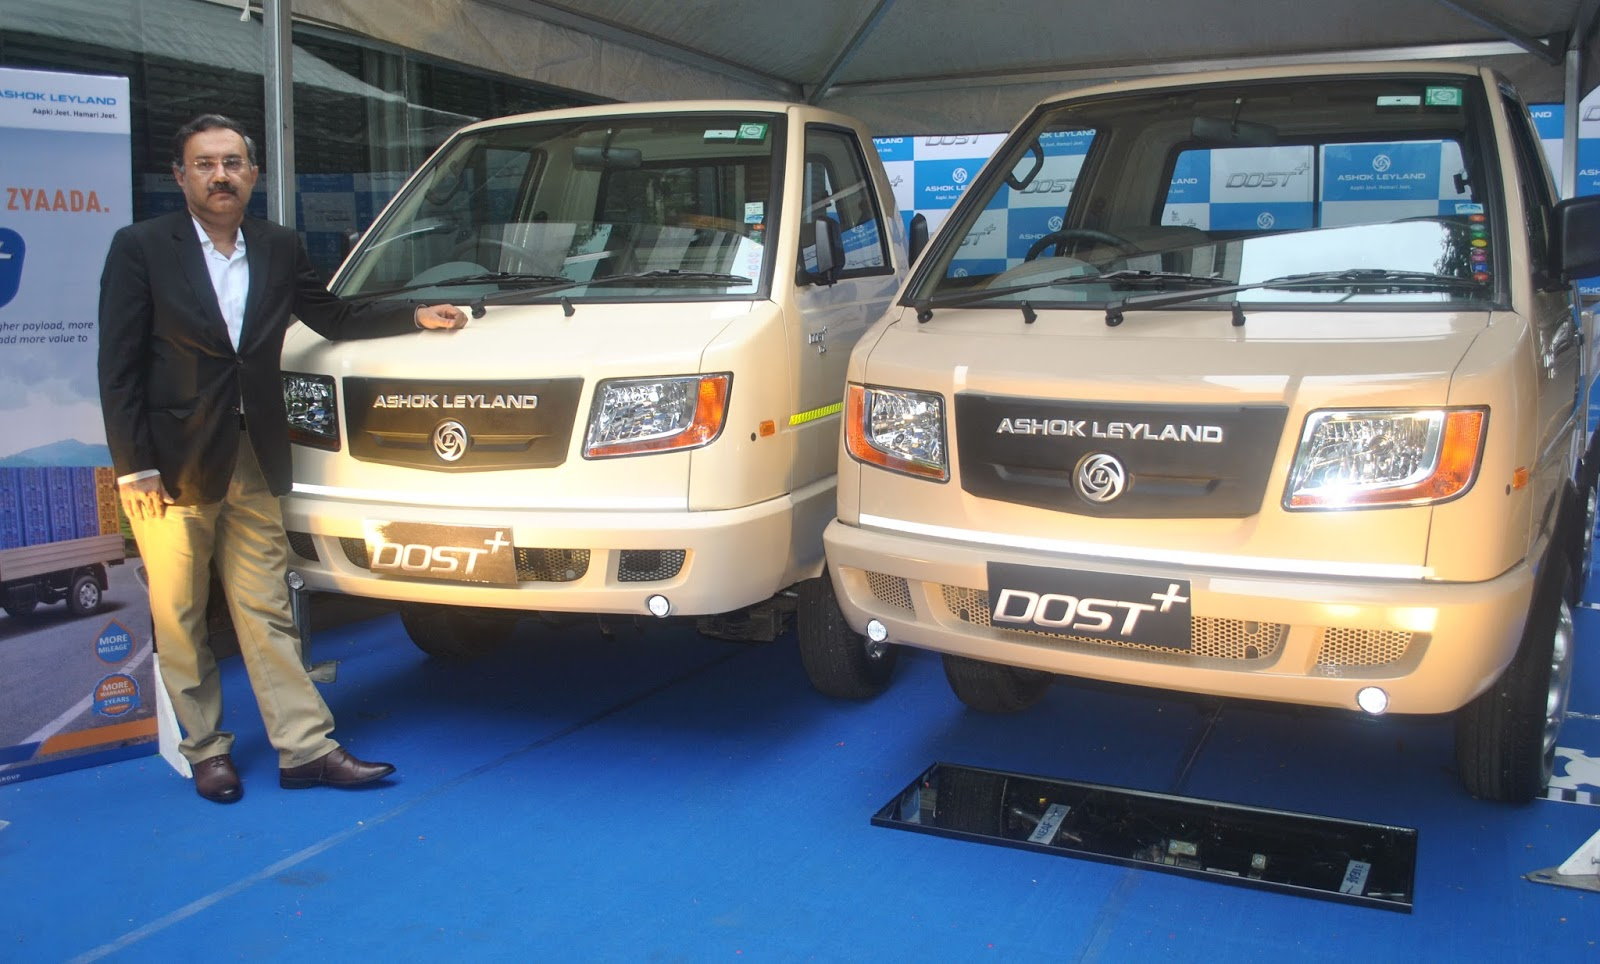 Ashok leyland launches the dost with 275 ton gvw to address the nitin seth president light commercial vehicles ashok leyland at the launch of the companys light commercial vehicle dost plus in pune mozeypictures Image collections